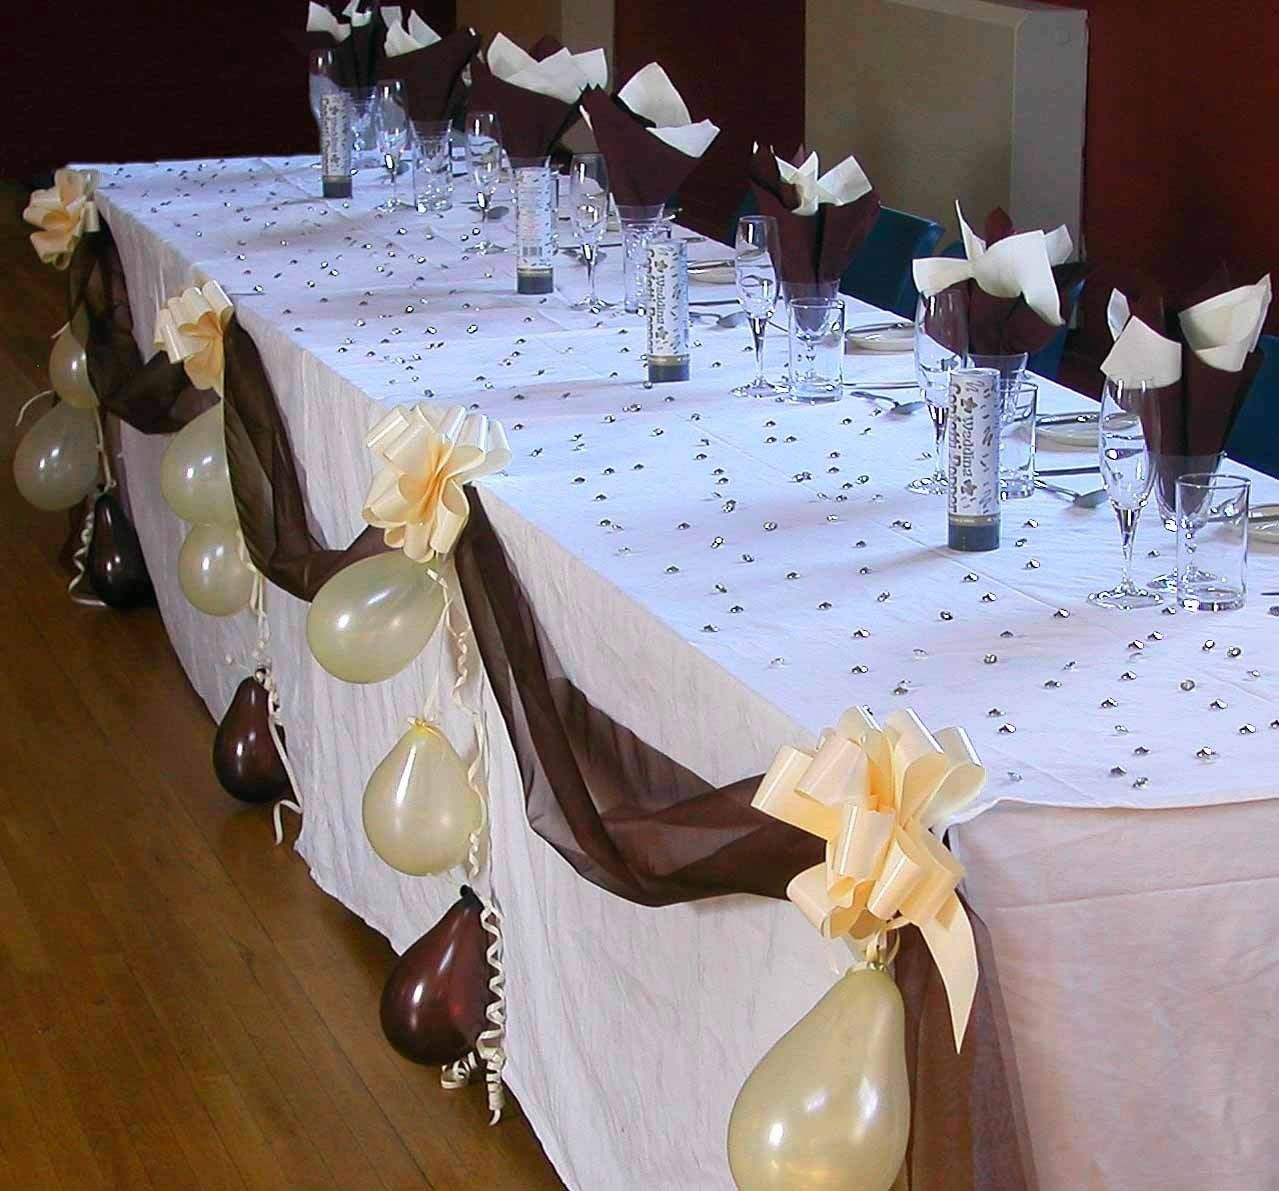 Wedding top table decoration kit organza fabric swags pull bows wedding top table decoration kit organza fabric swags pull bows balloons ebay junglespirit